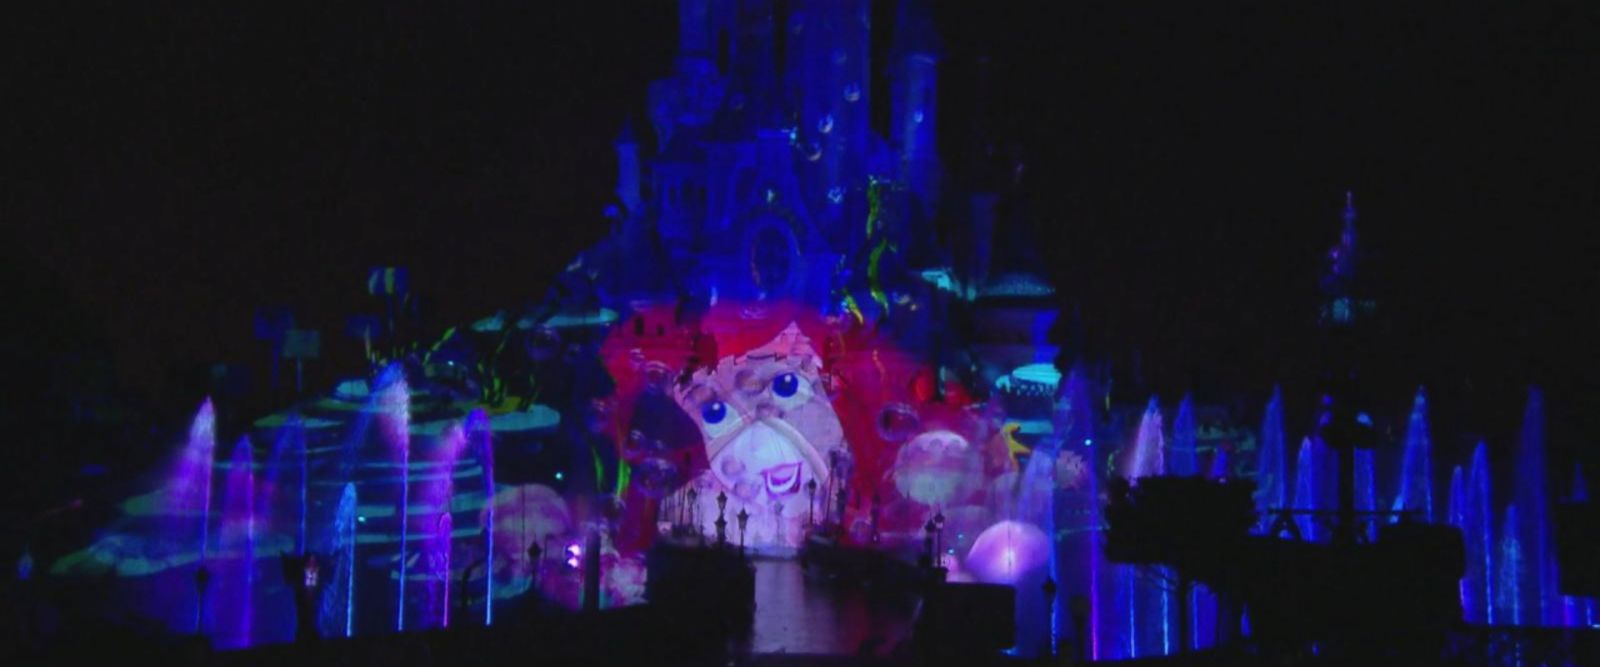 VIDEO: Disneyland Paris 25th Anniversary - Disney Illuminations